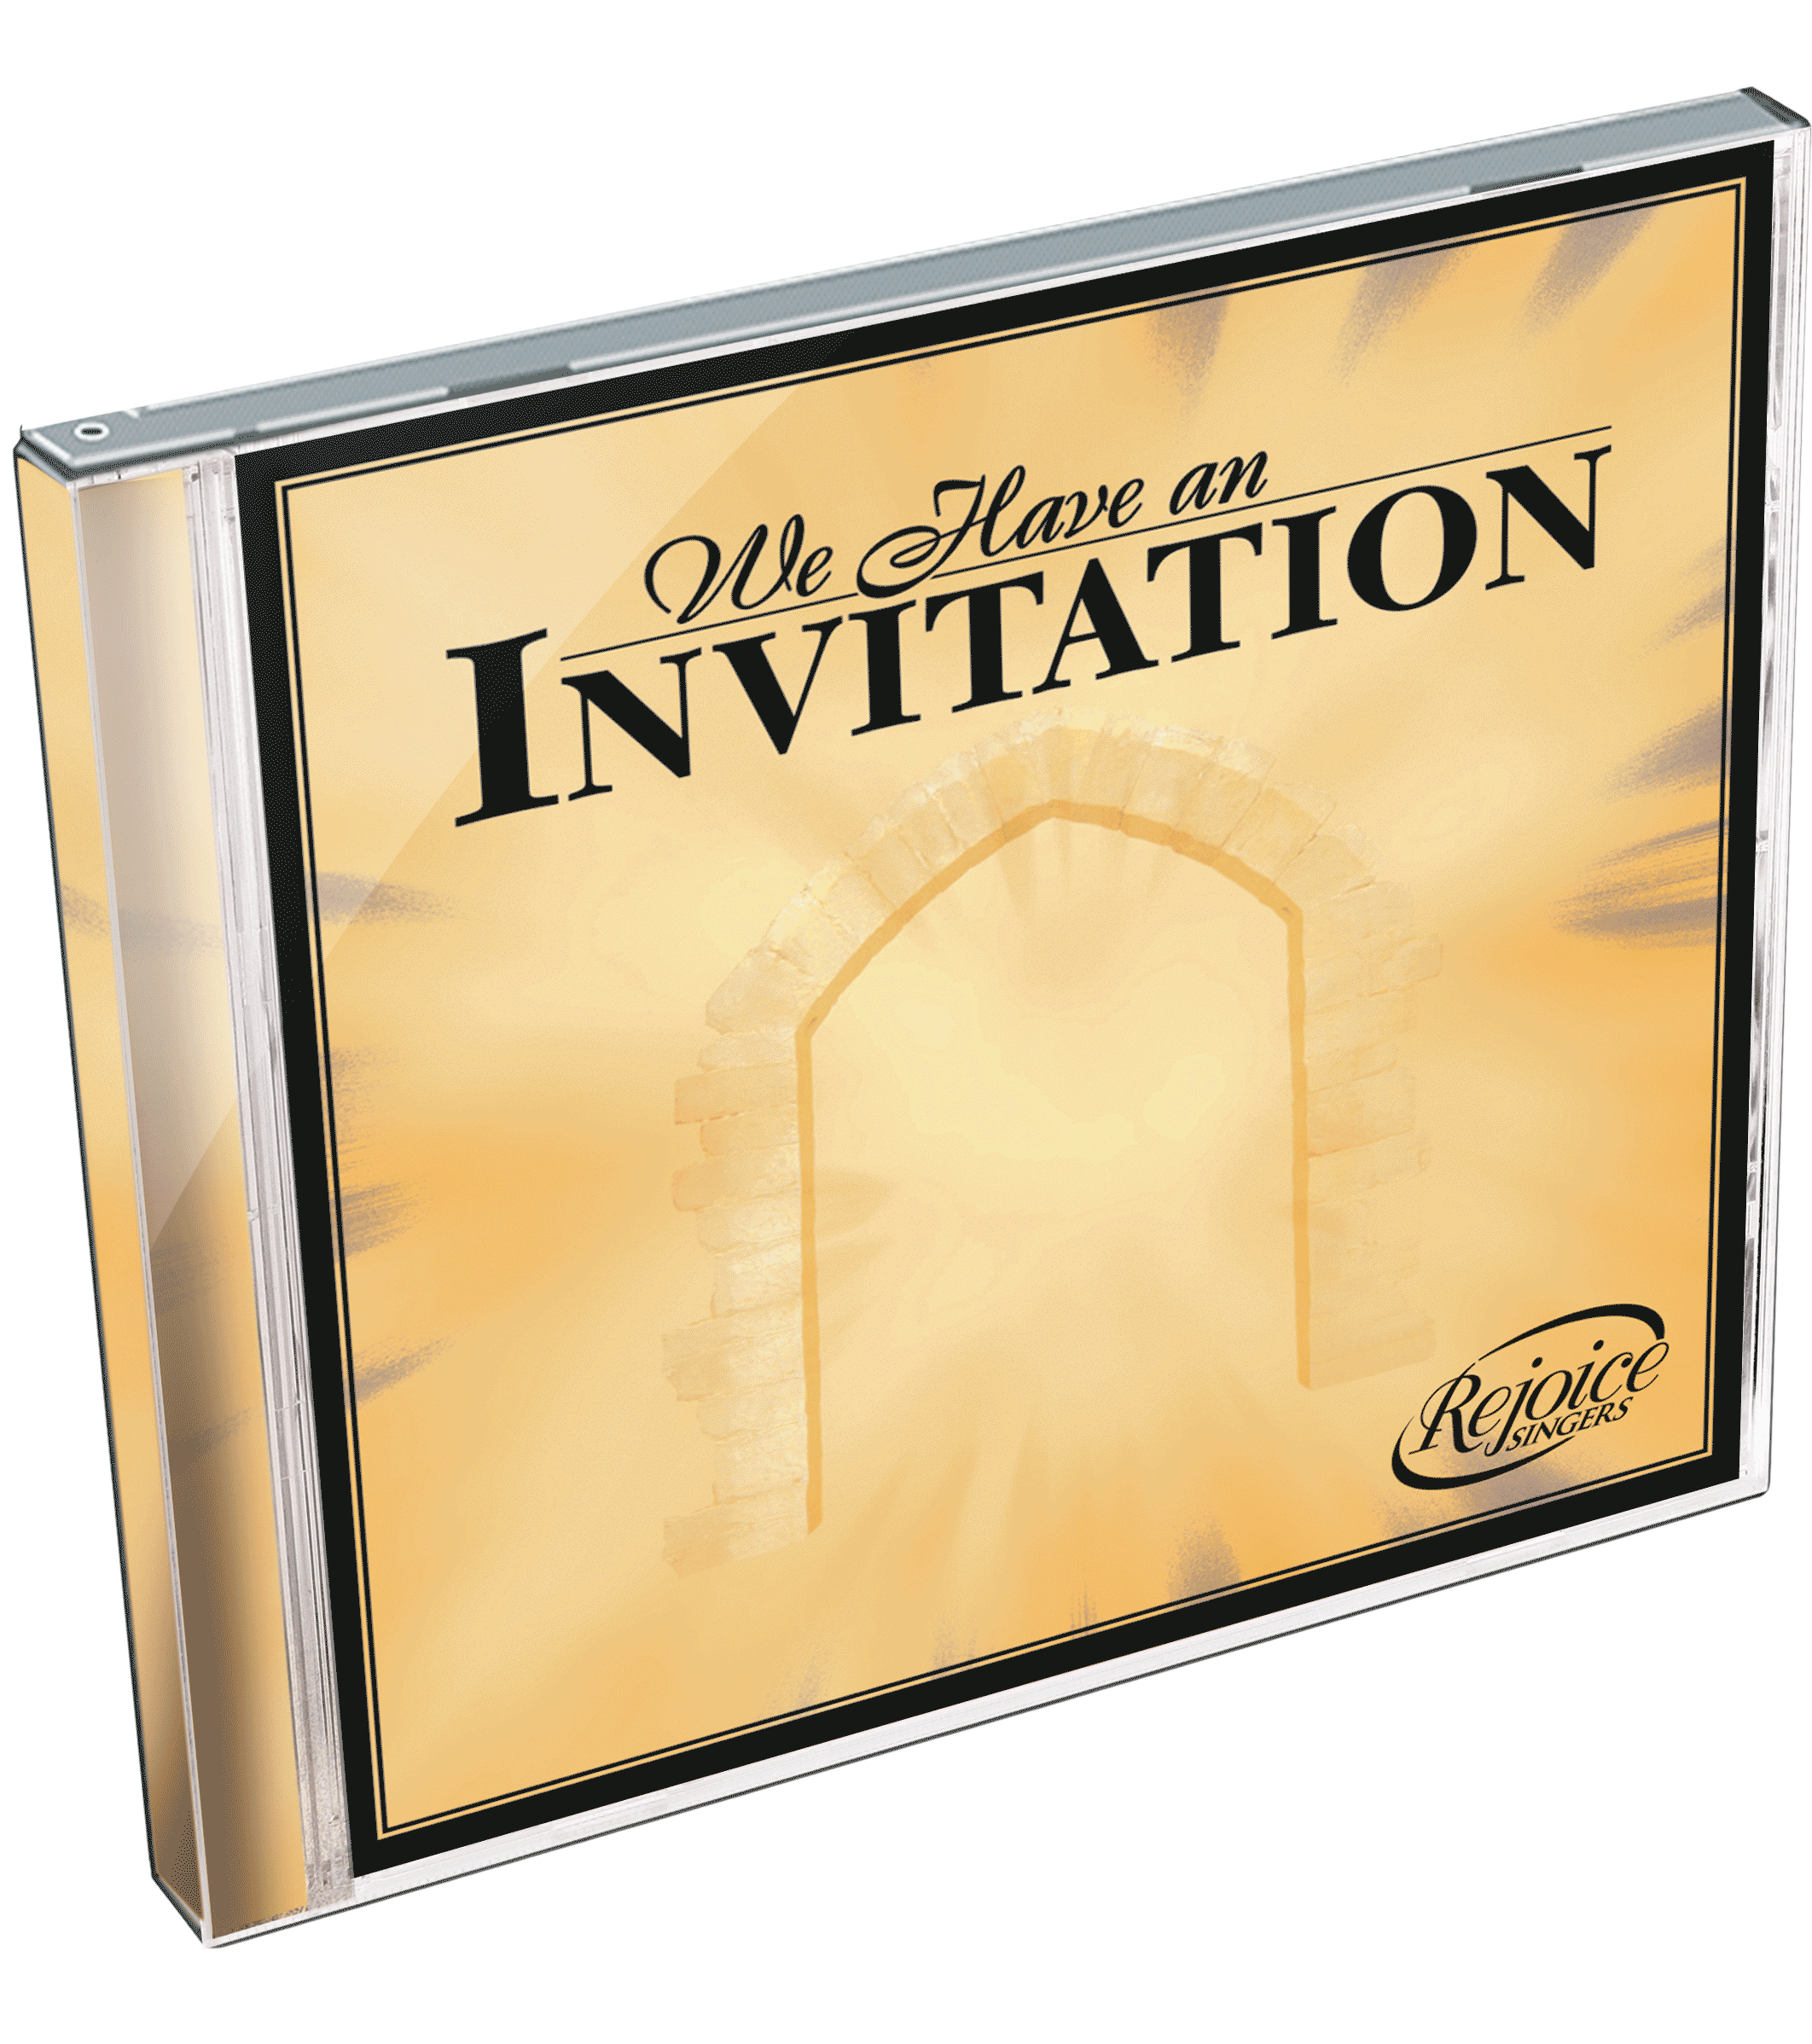 We Have an Invitation CD